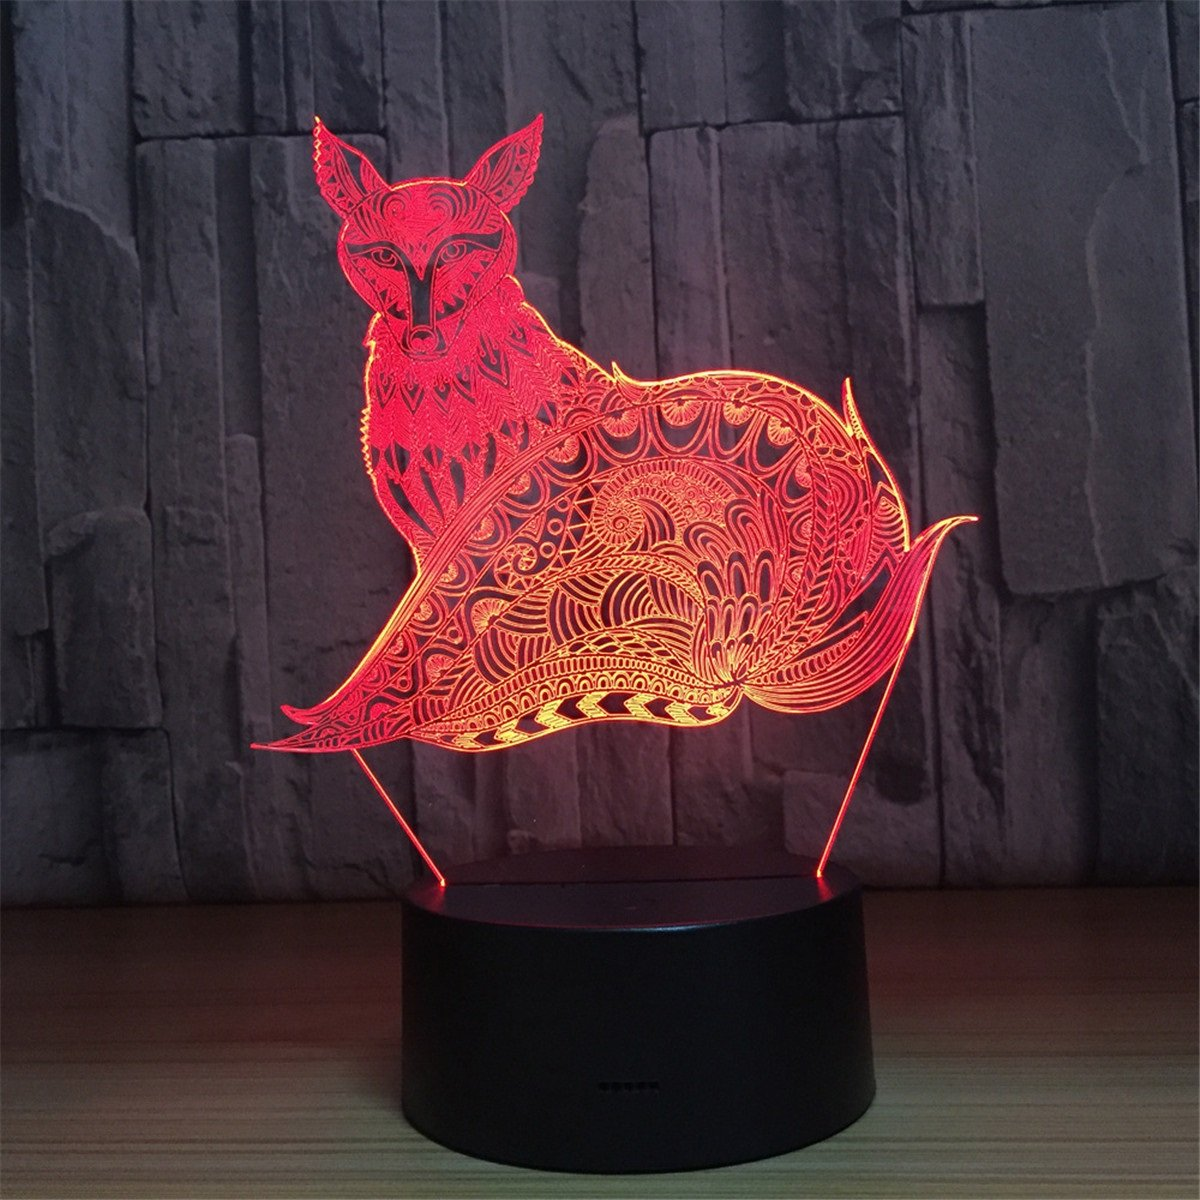 Fox 3d Touch Optical Illusion Night Light Stunning Visual 3次元効果7色ChangingテーブルデスクDecoランプ寝室子供部屋装飾Nightlight for Kids B078MJ2V9N